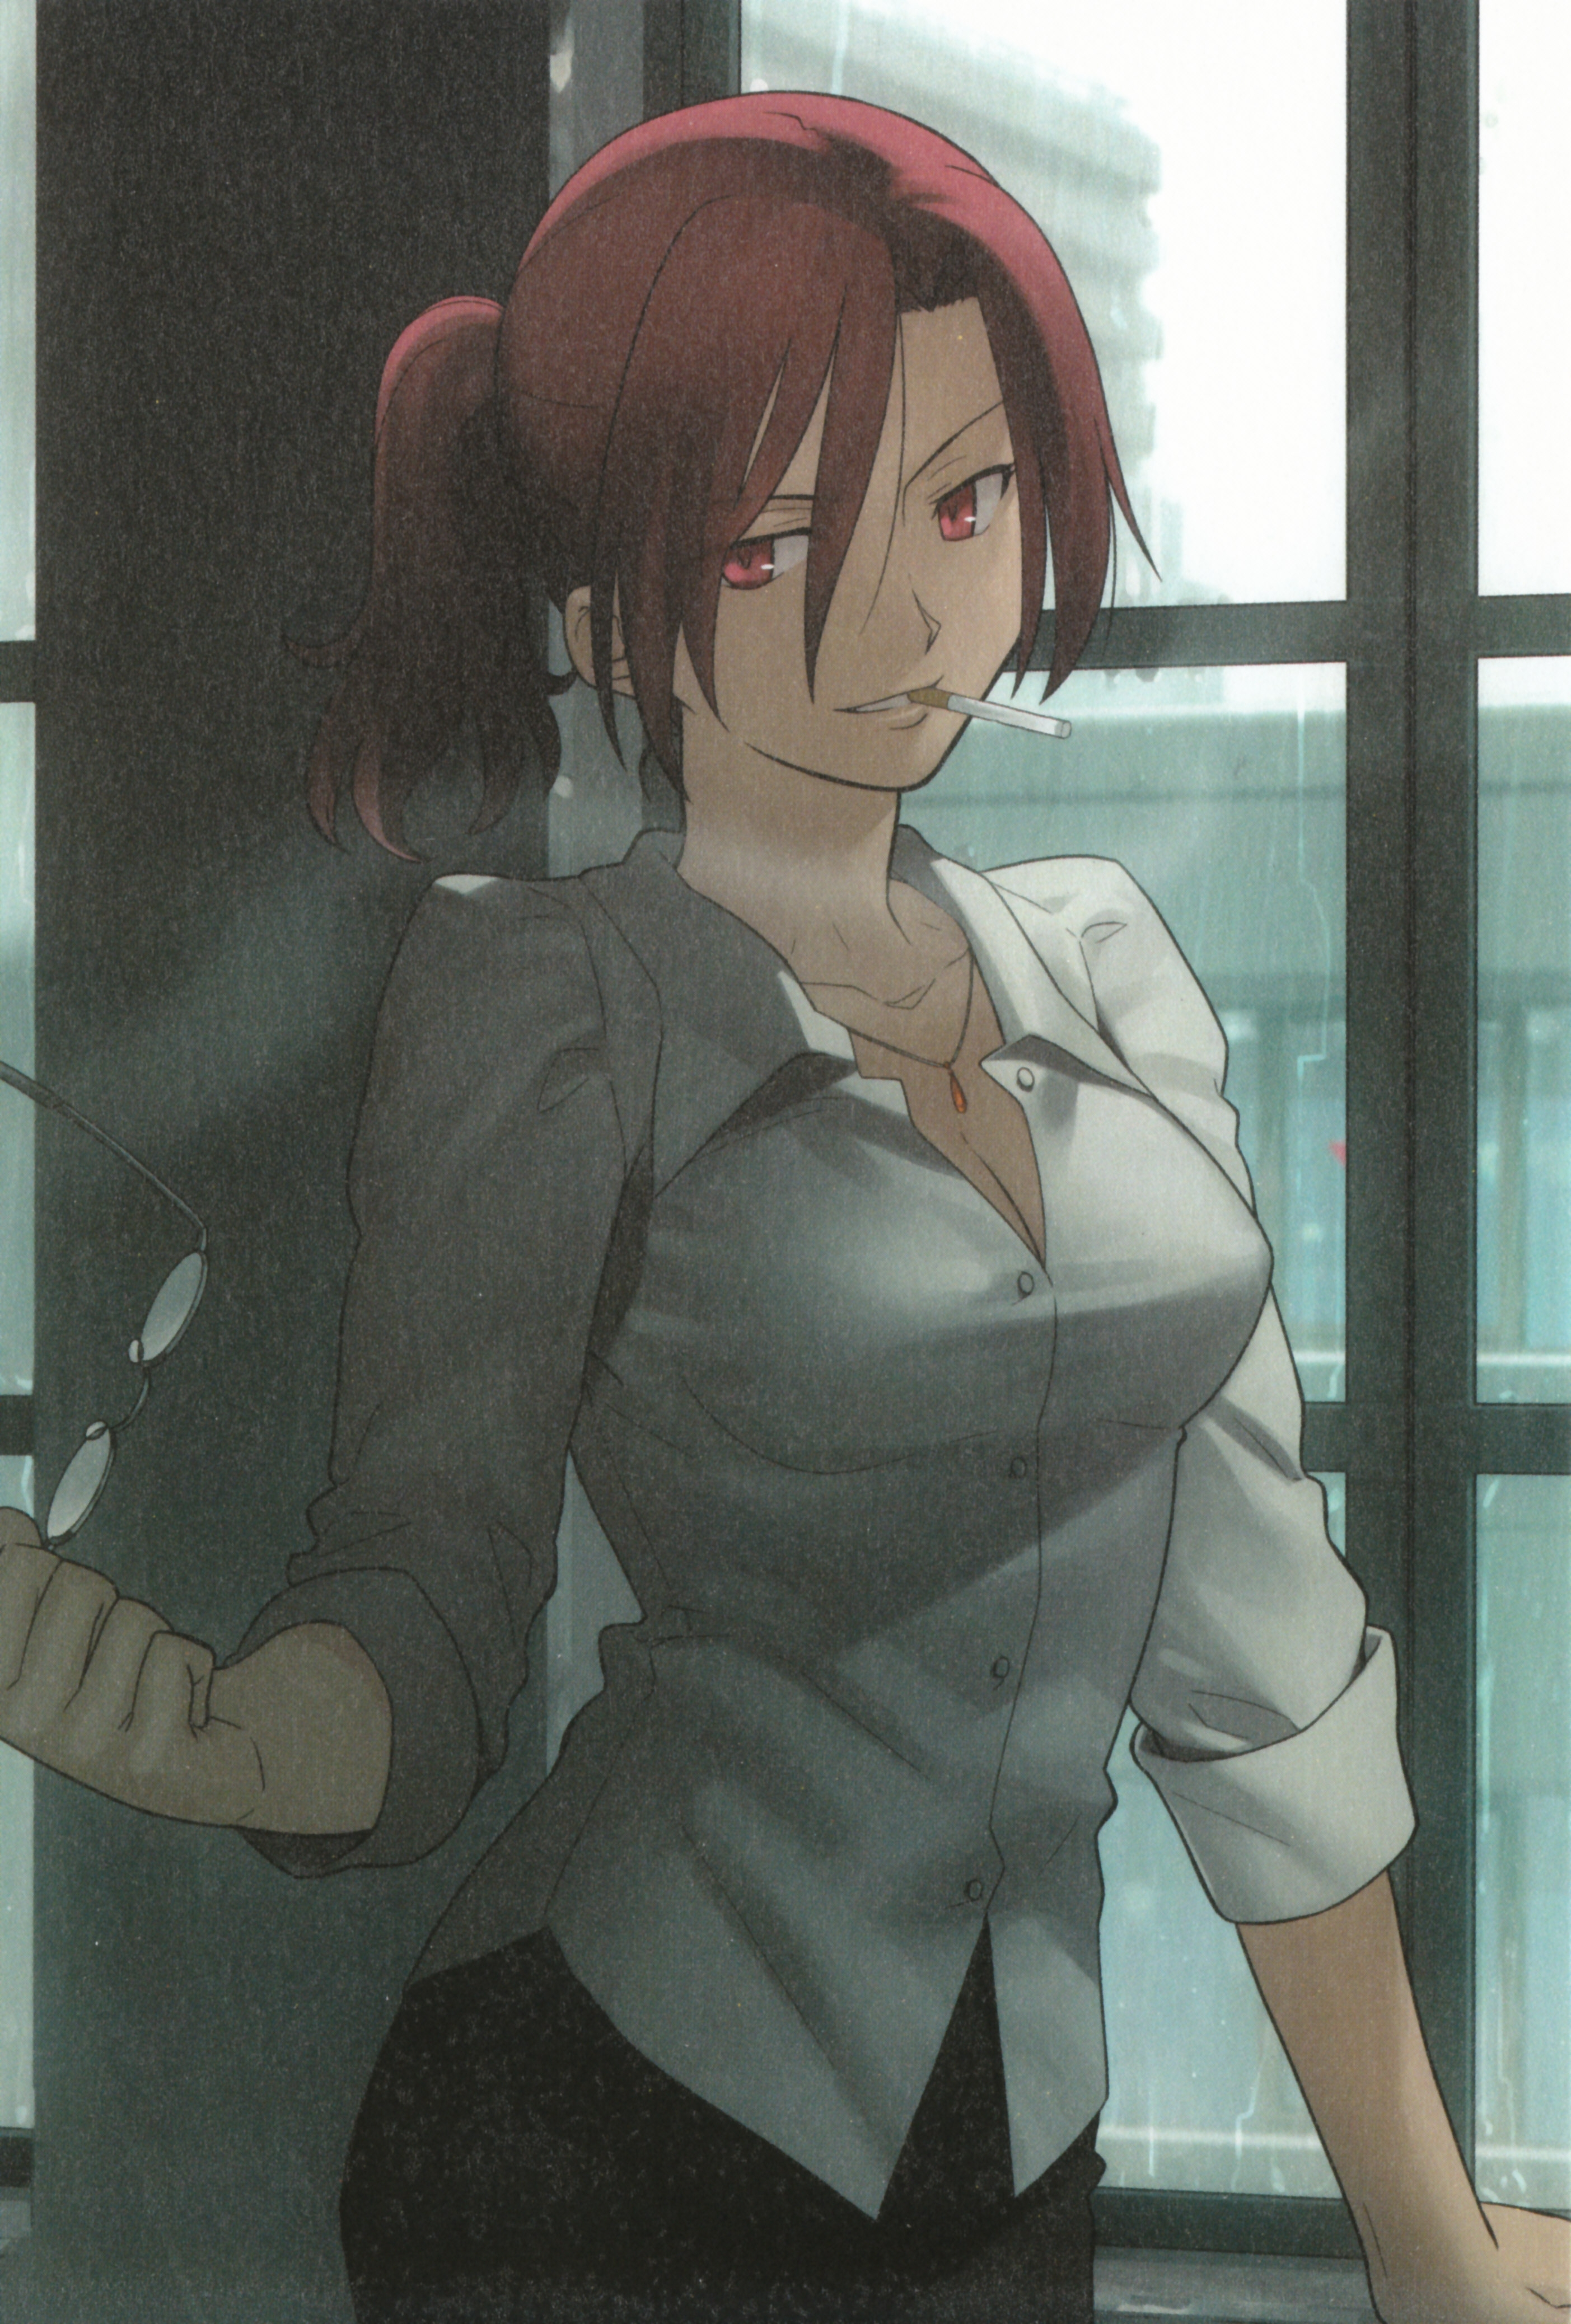 Aozaki Touko, Takashi Takeuchi, Type-moon, The Garden of Sinners, Takashi Takeuchi, Female, Glasses, Red Hair, Smoking, Solo, Window